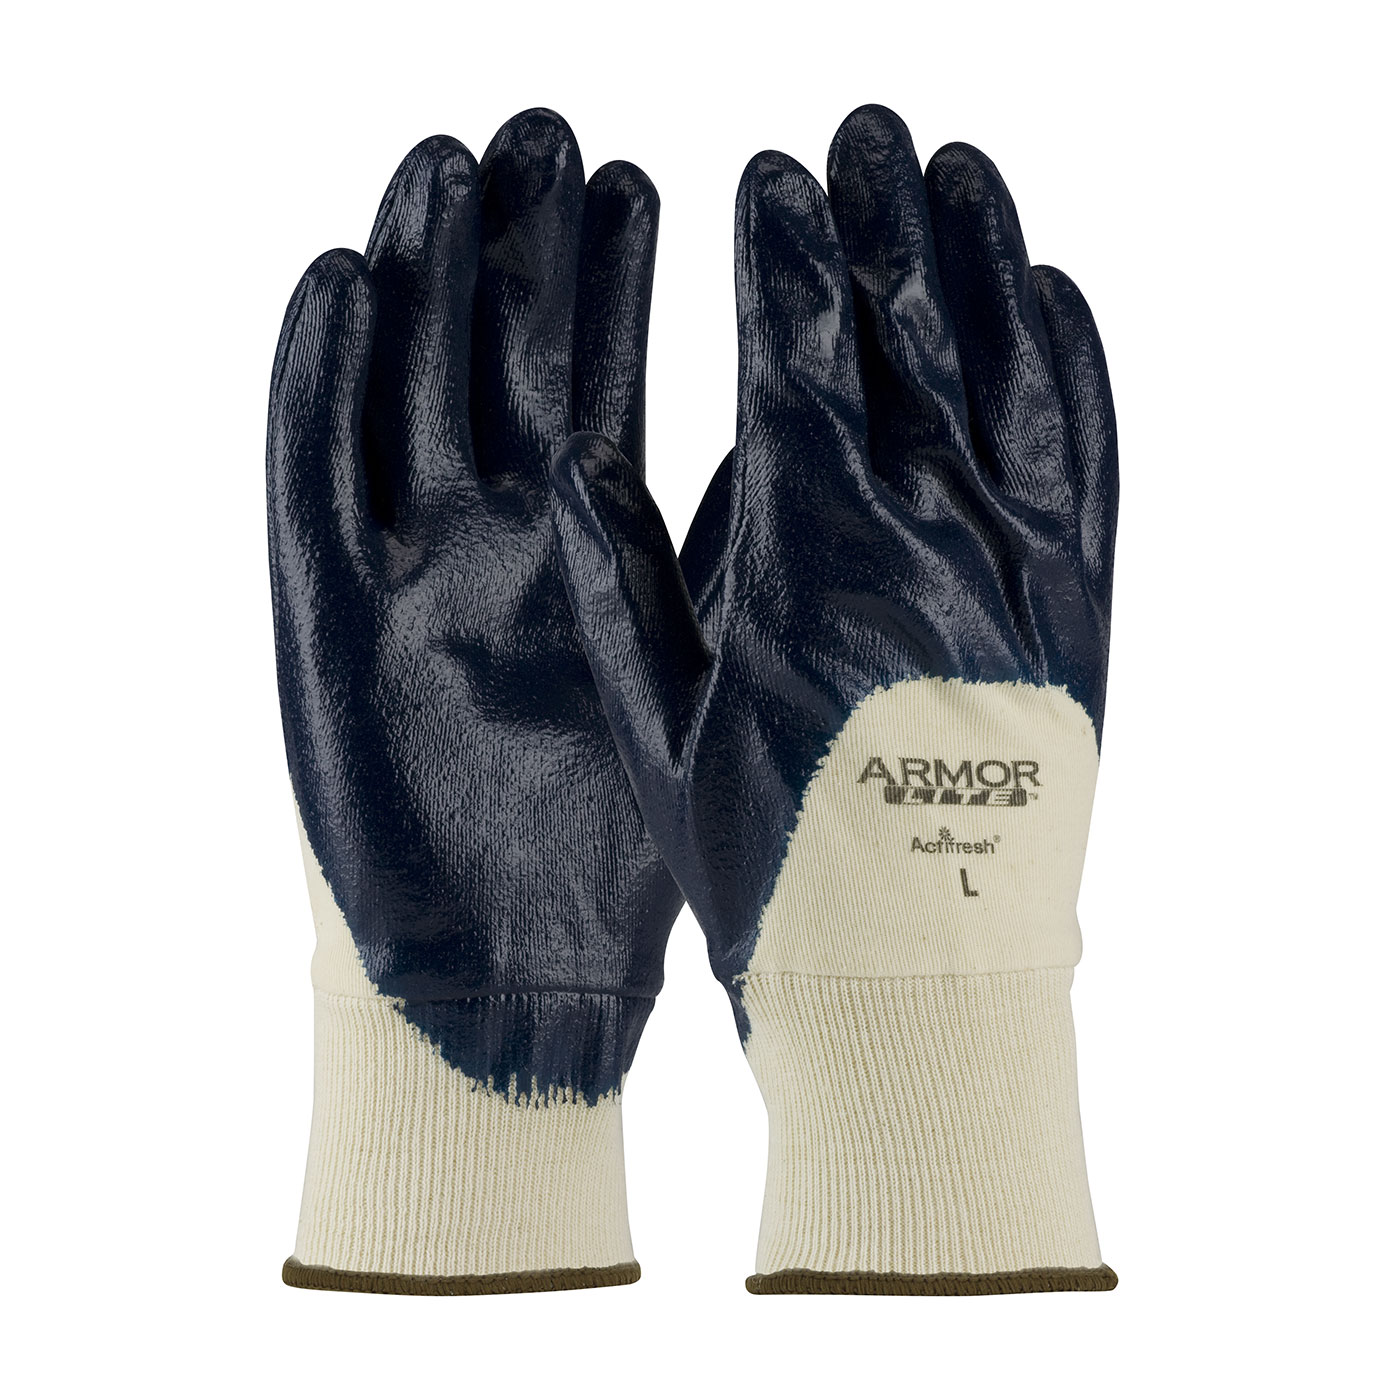 56-3170 PIP® ArmorLite® Nitrile Dipped Glove with Interlock Liner and Textured Finish on Palm, Fingers & Knuckles - Knitwrist